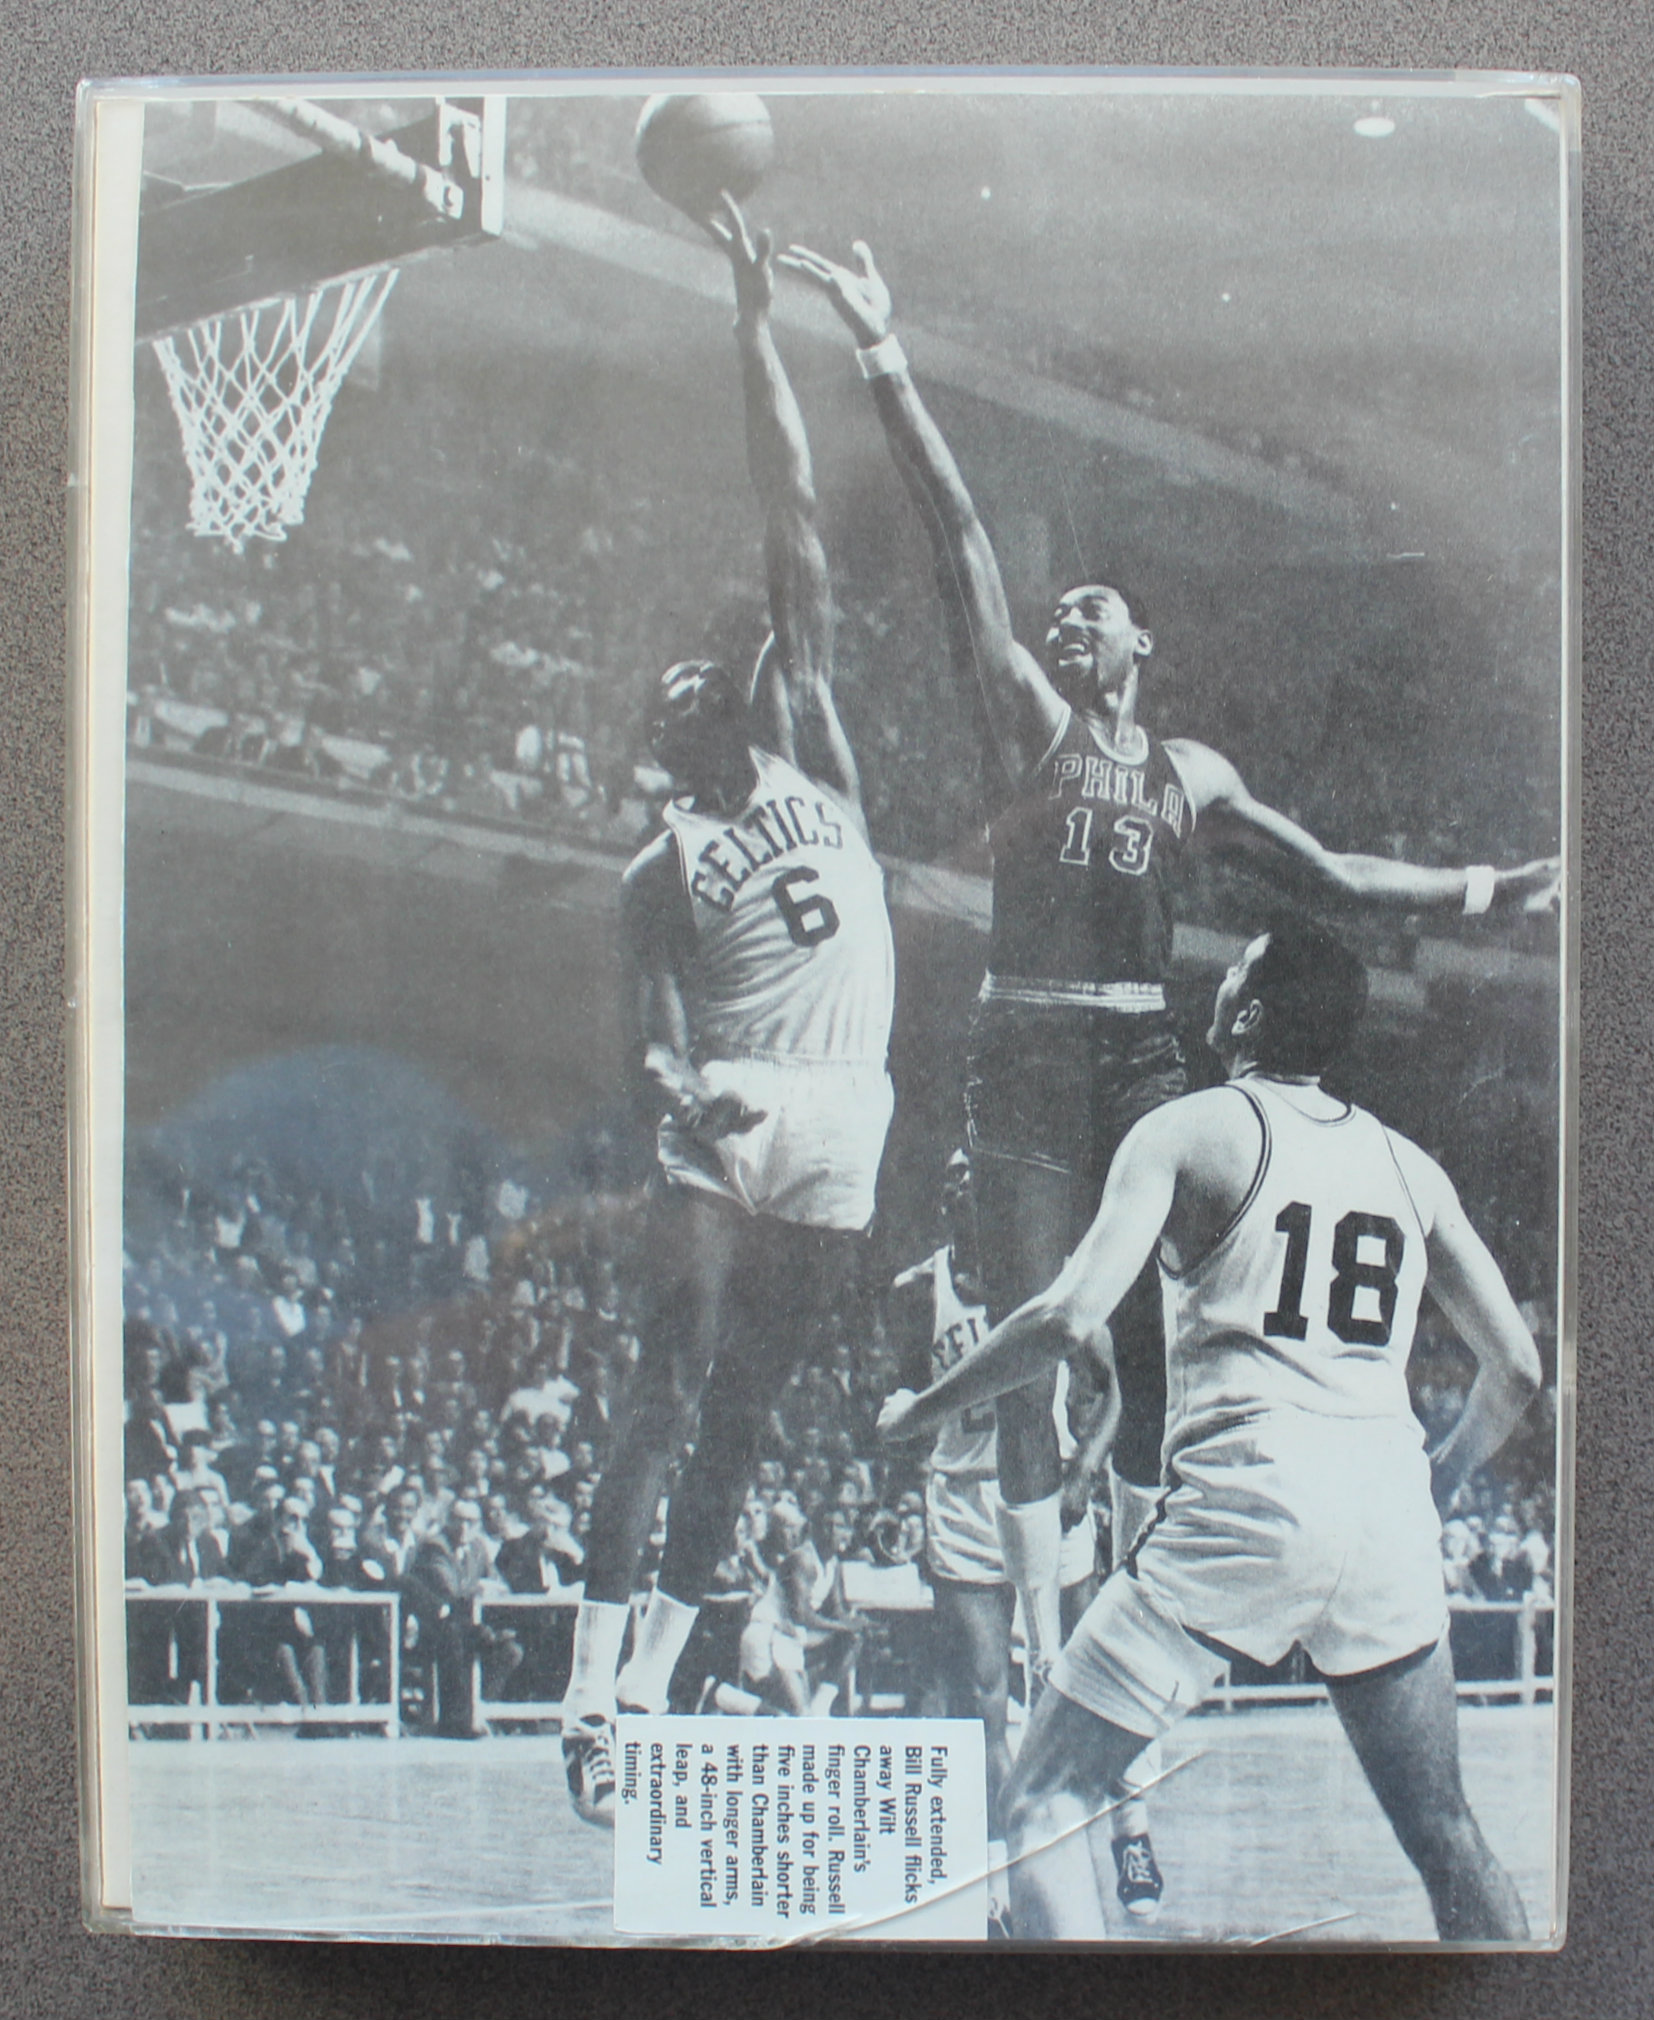 Bill Russell blocks a Wilt Chamberlain shot.